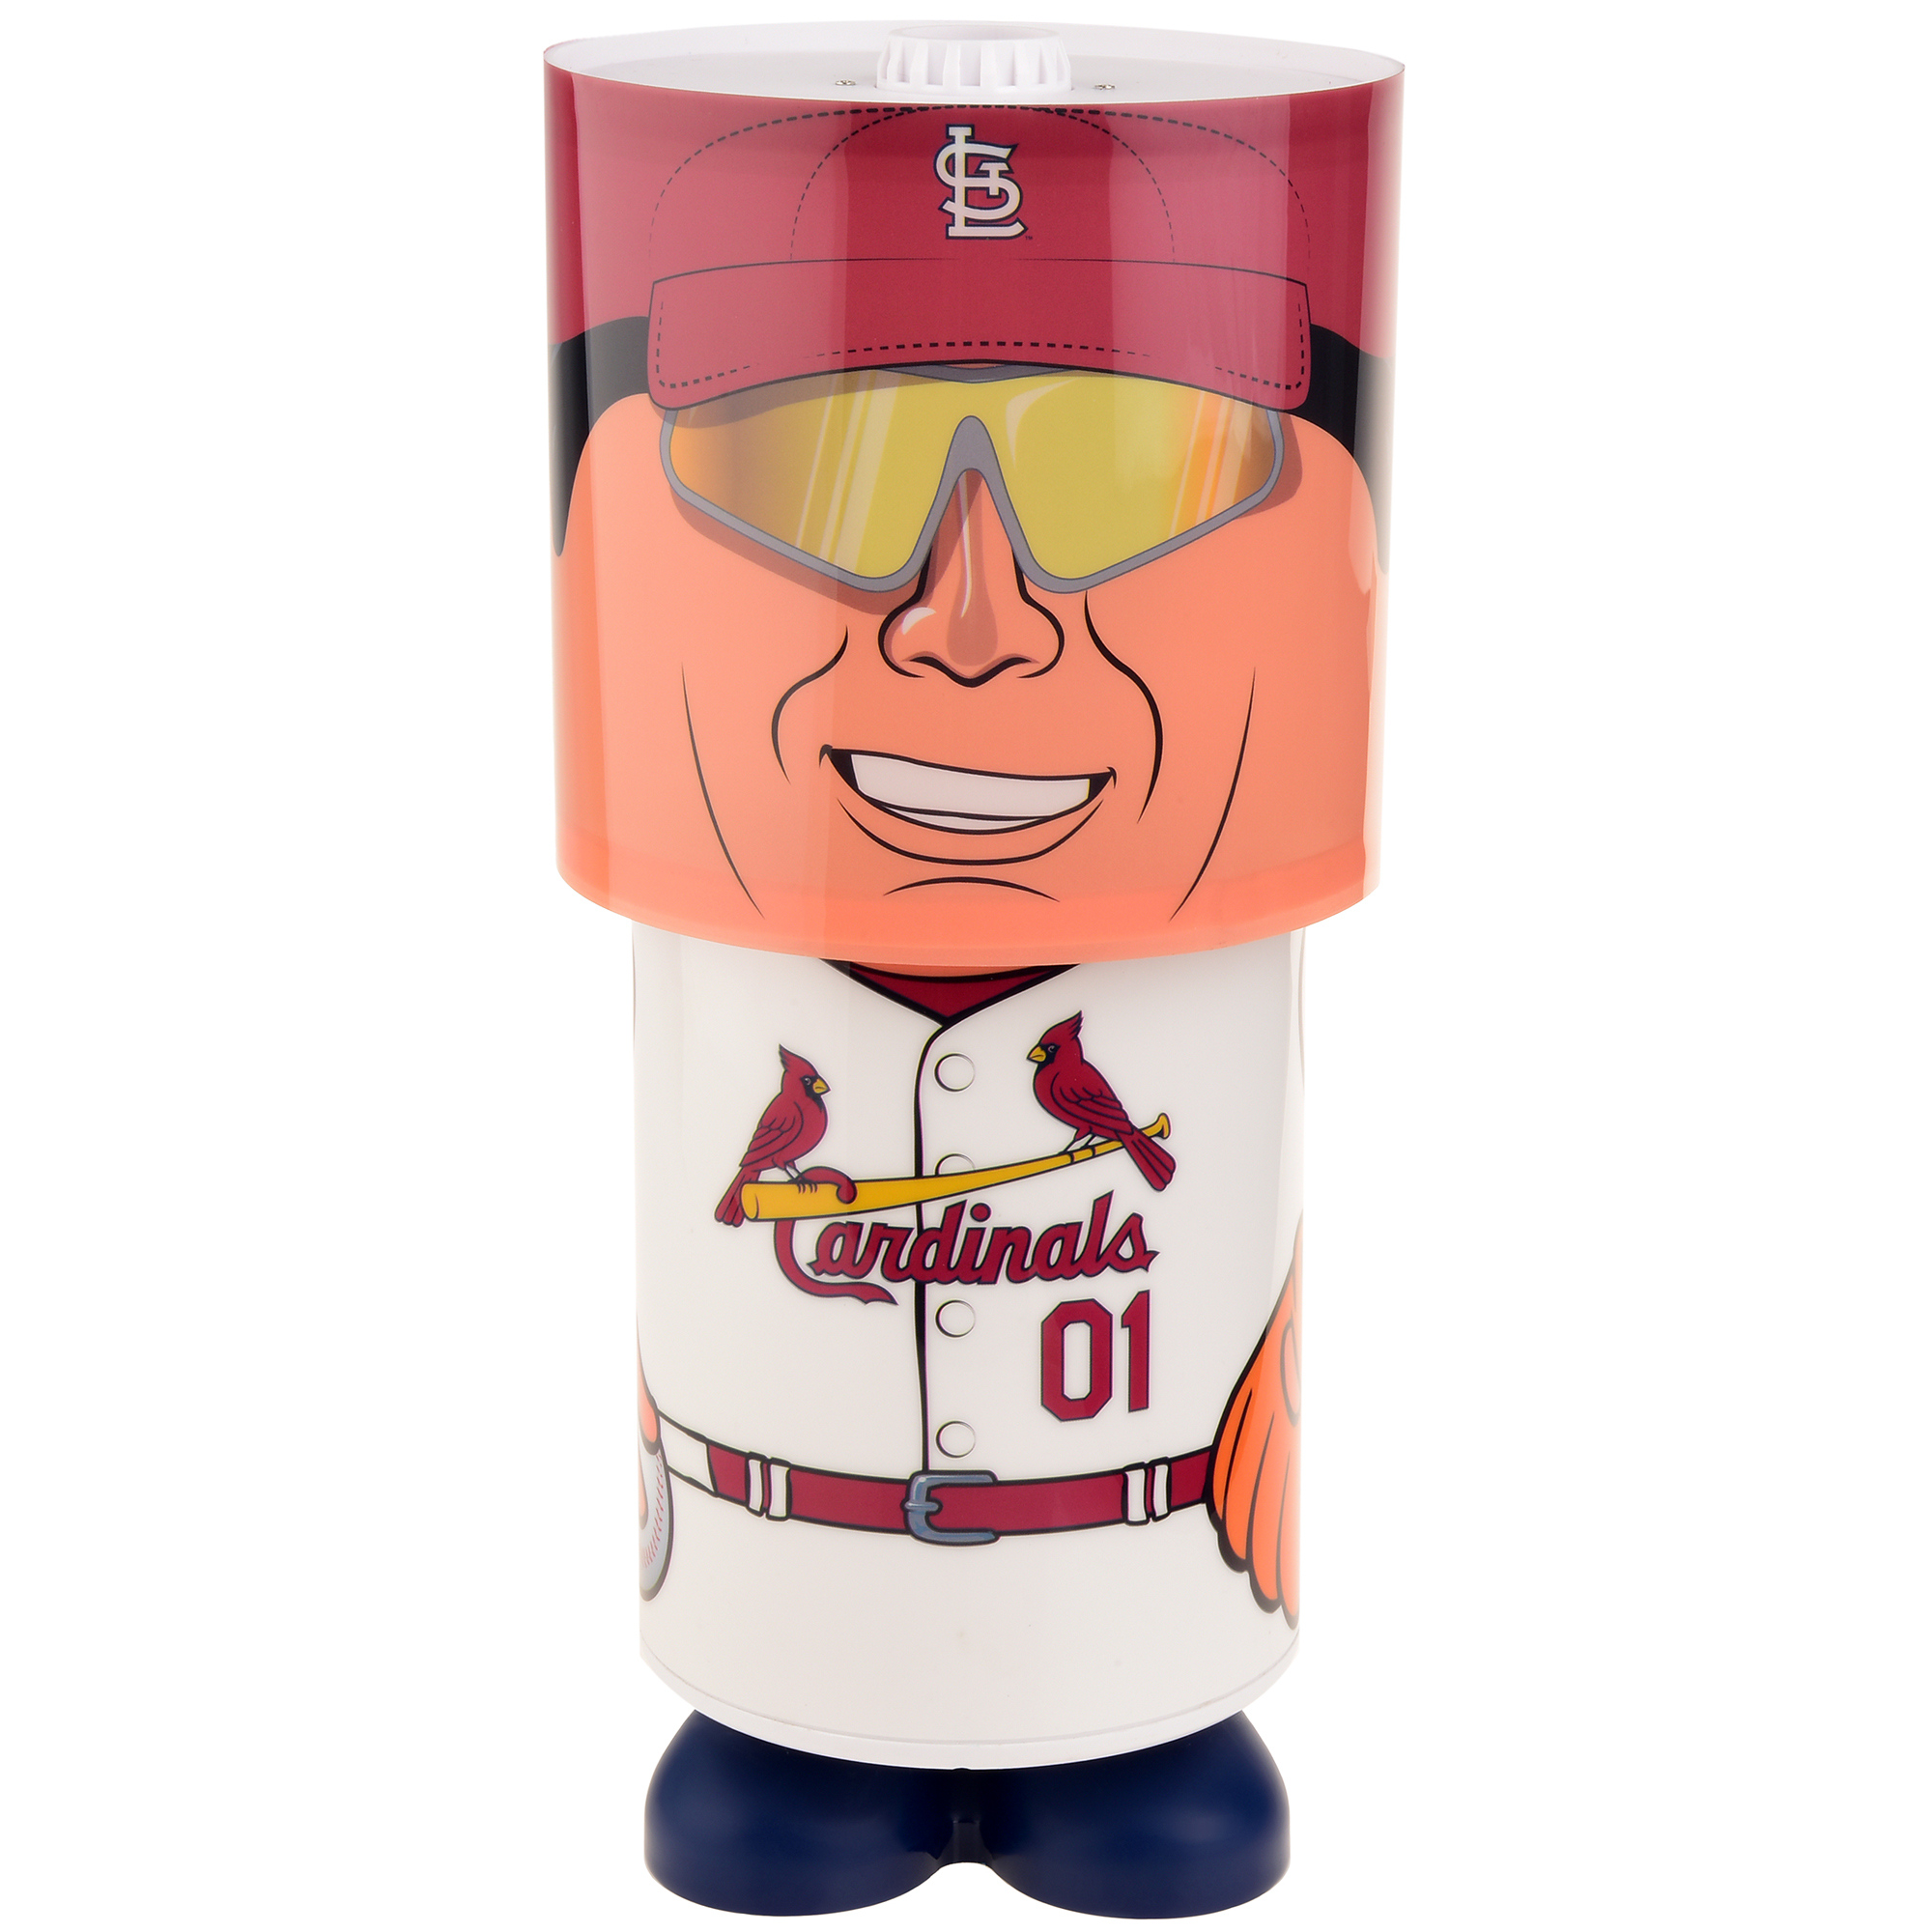 St. Louis Cardinals Projector Desk Lamp - No Size